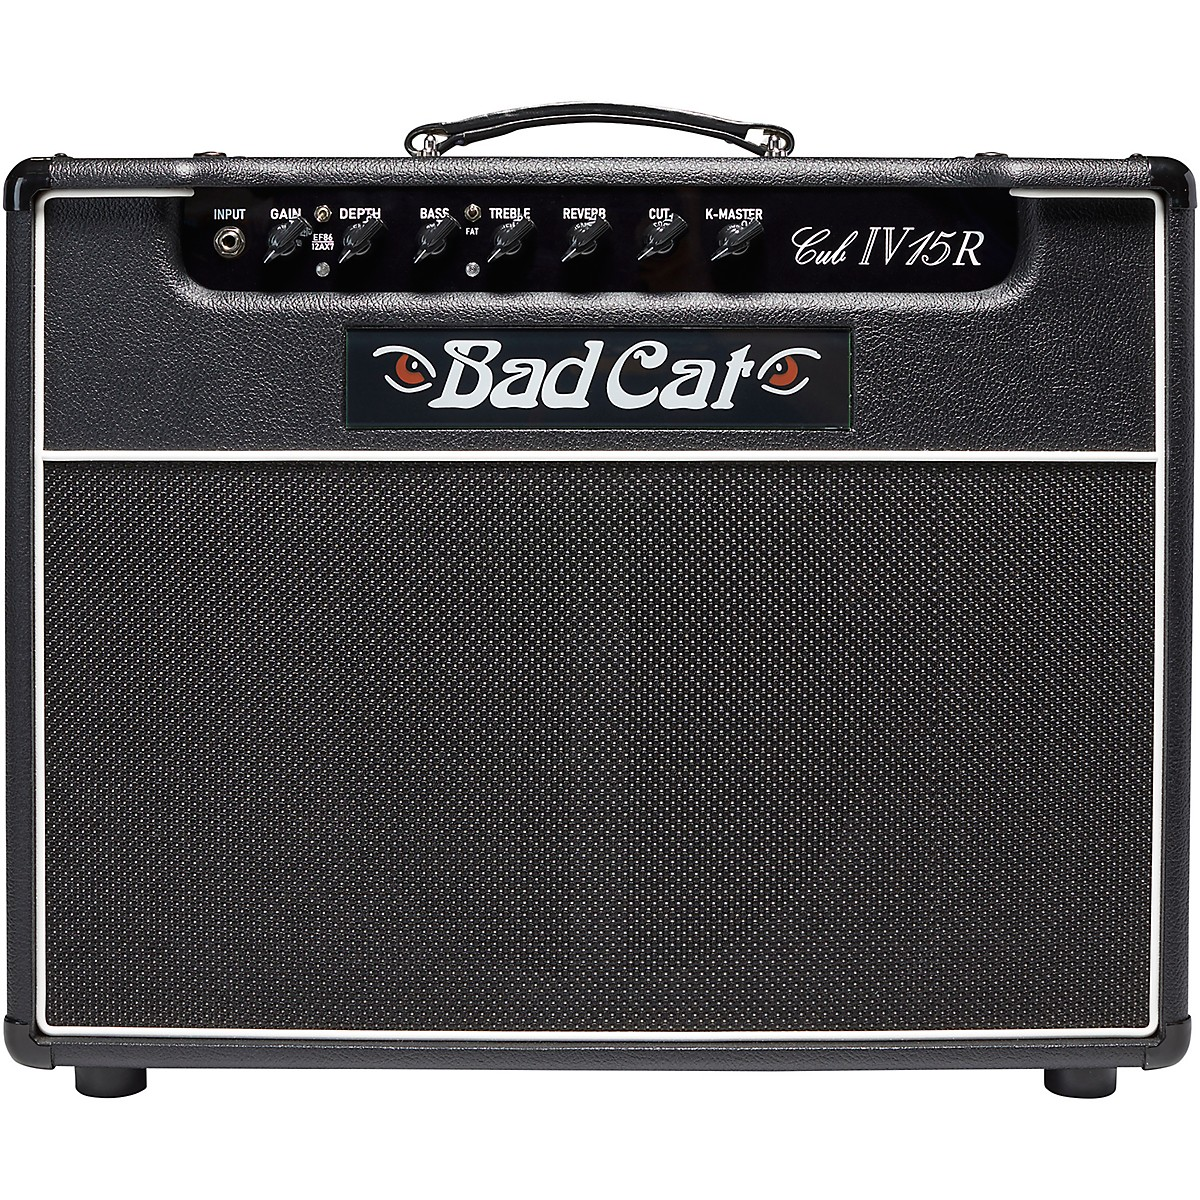 Bad Cat Cub IV 15w 1x12 Guitar Combo Amp with Reverb